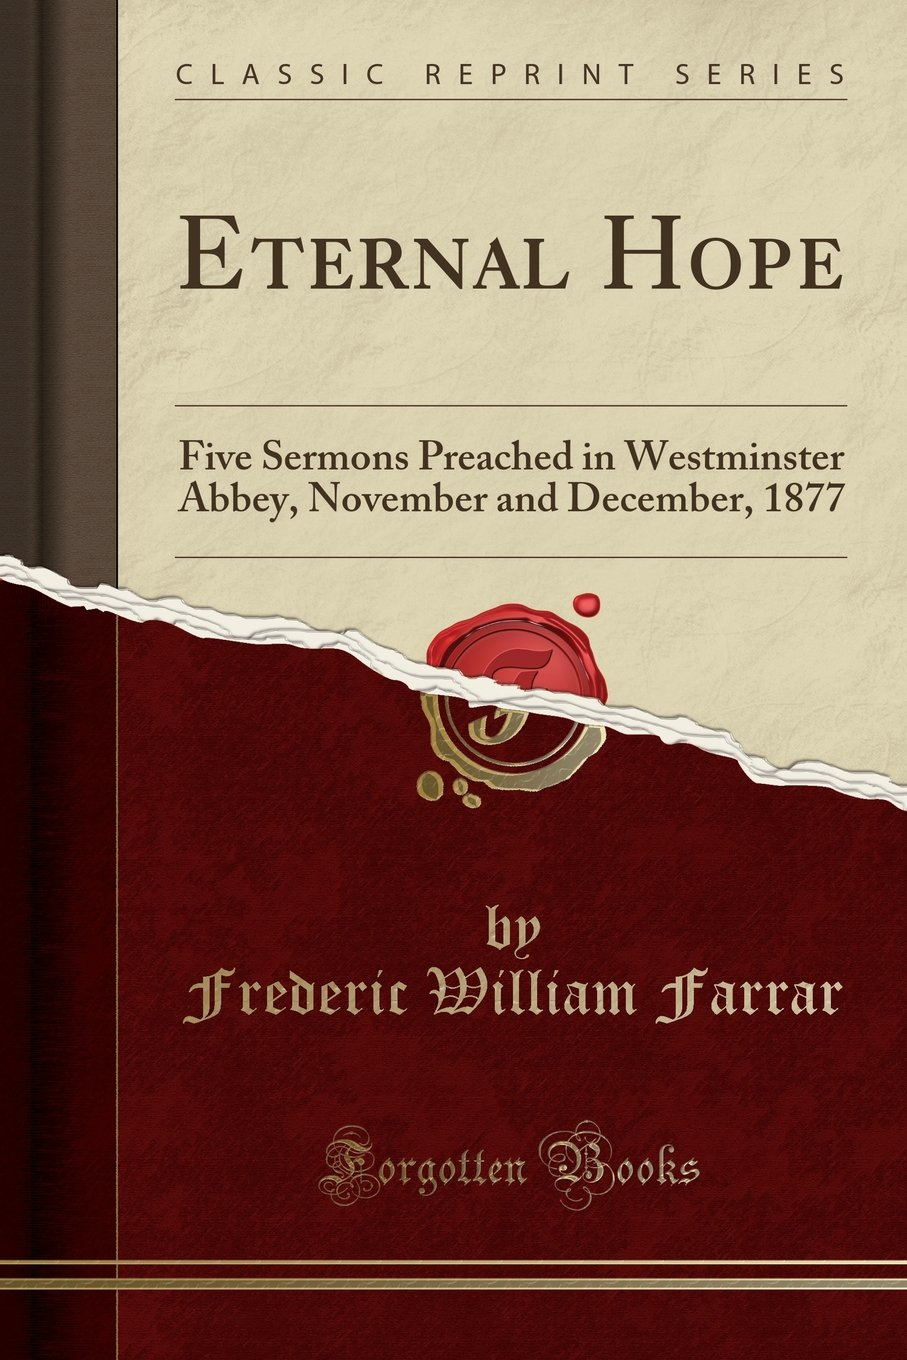 Eternal Hope: Five Sermons Preached in Westminster Abbey, November and December, 1877 (Classic Reprint) ebook